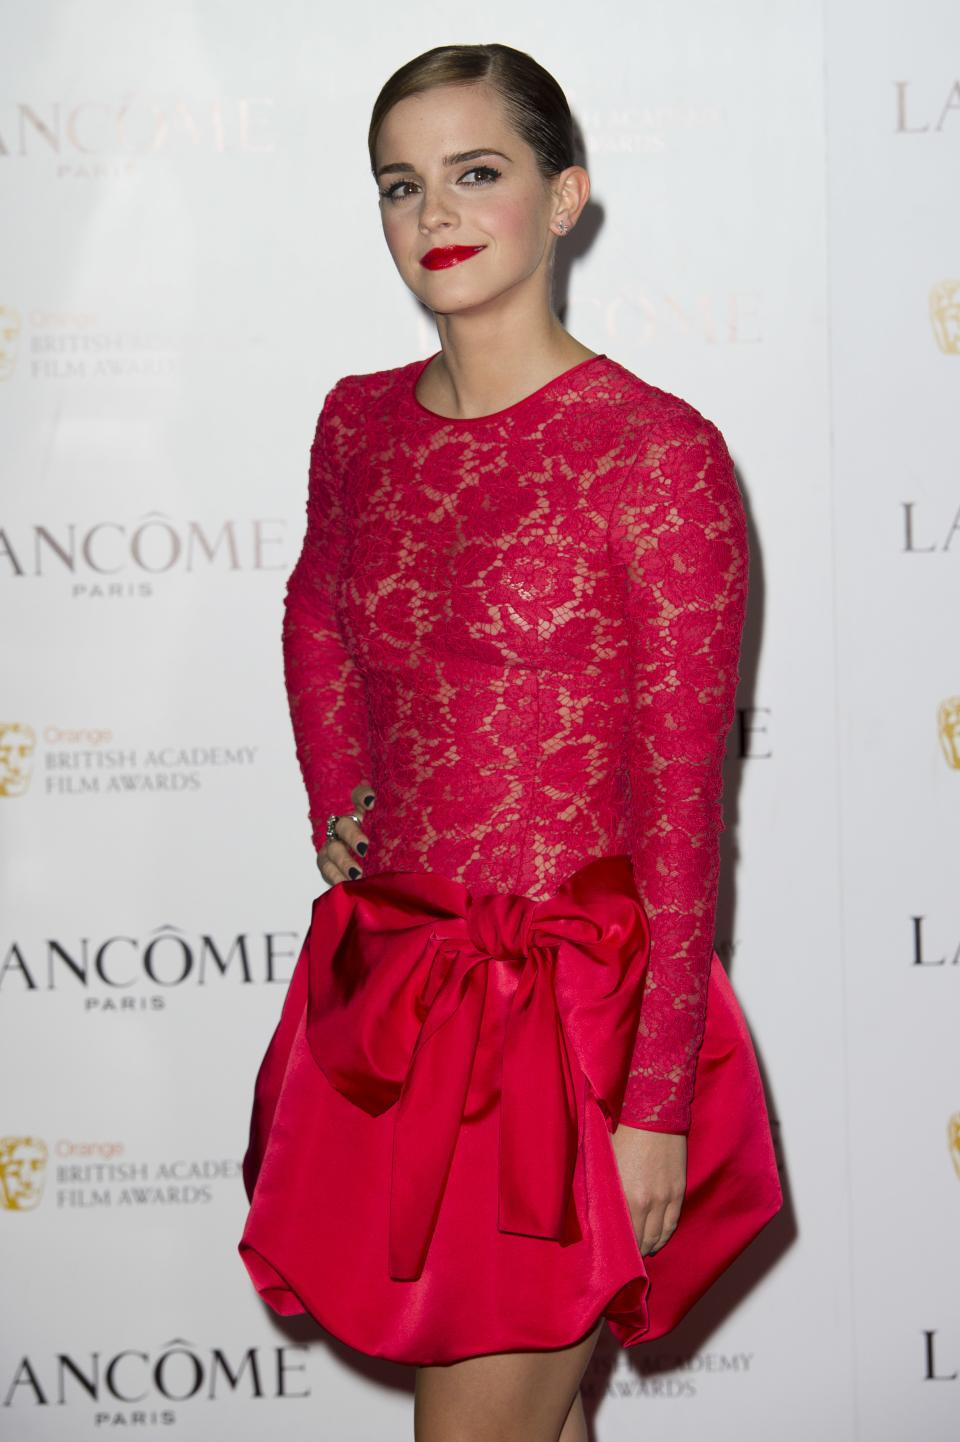 British actress Emma Watson, arrives for the Lancome pre-BAFTA cocktail party at a central London venue, Friday, Feb. 10, 2012. (AP Photo/Jonathan Short)